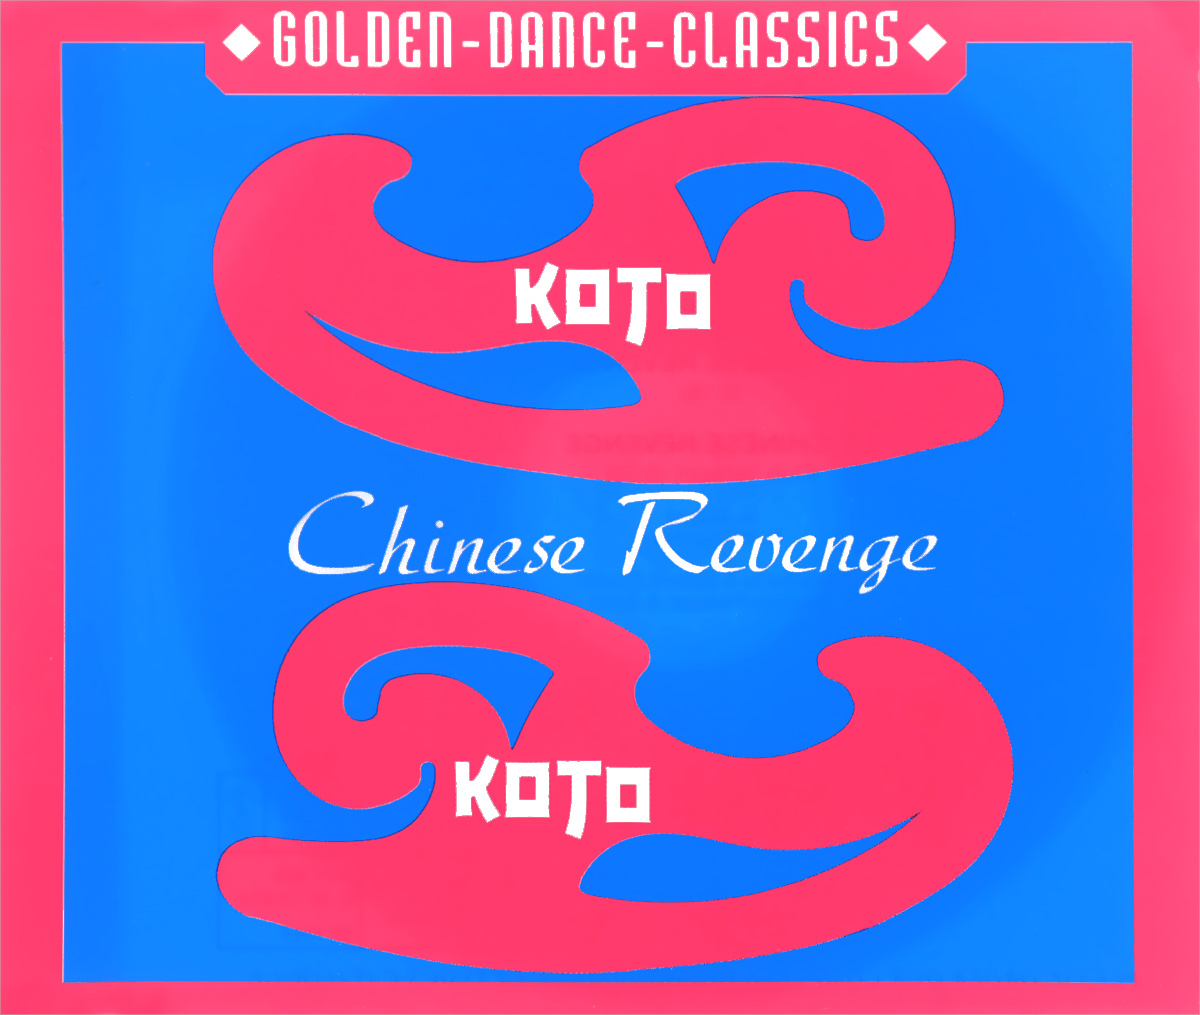 Koto Koto. Chinese Revenge koto koto the 12 mixes